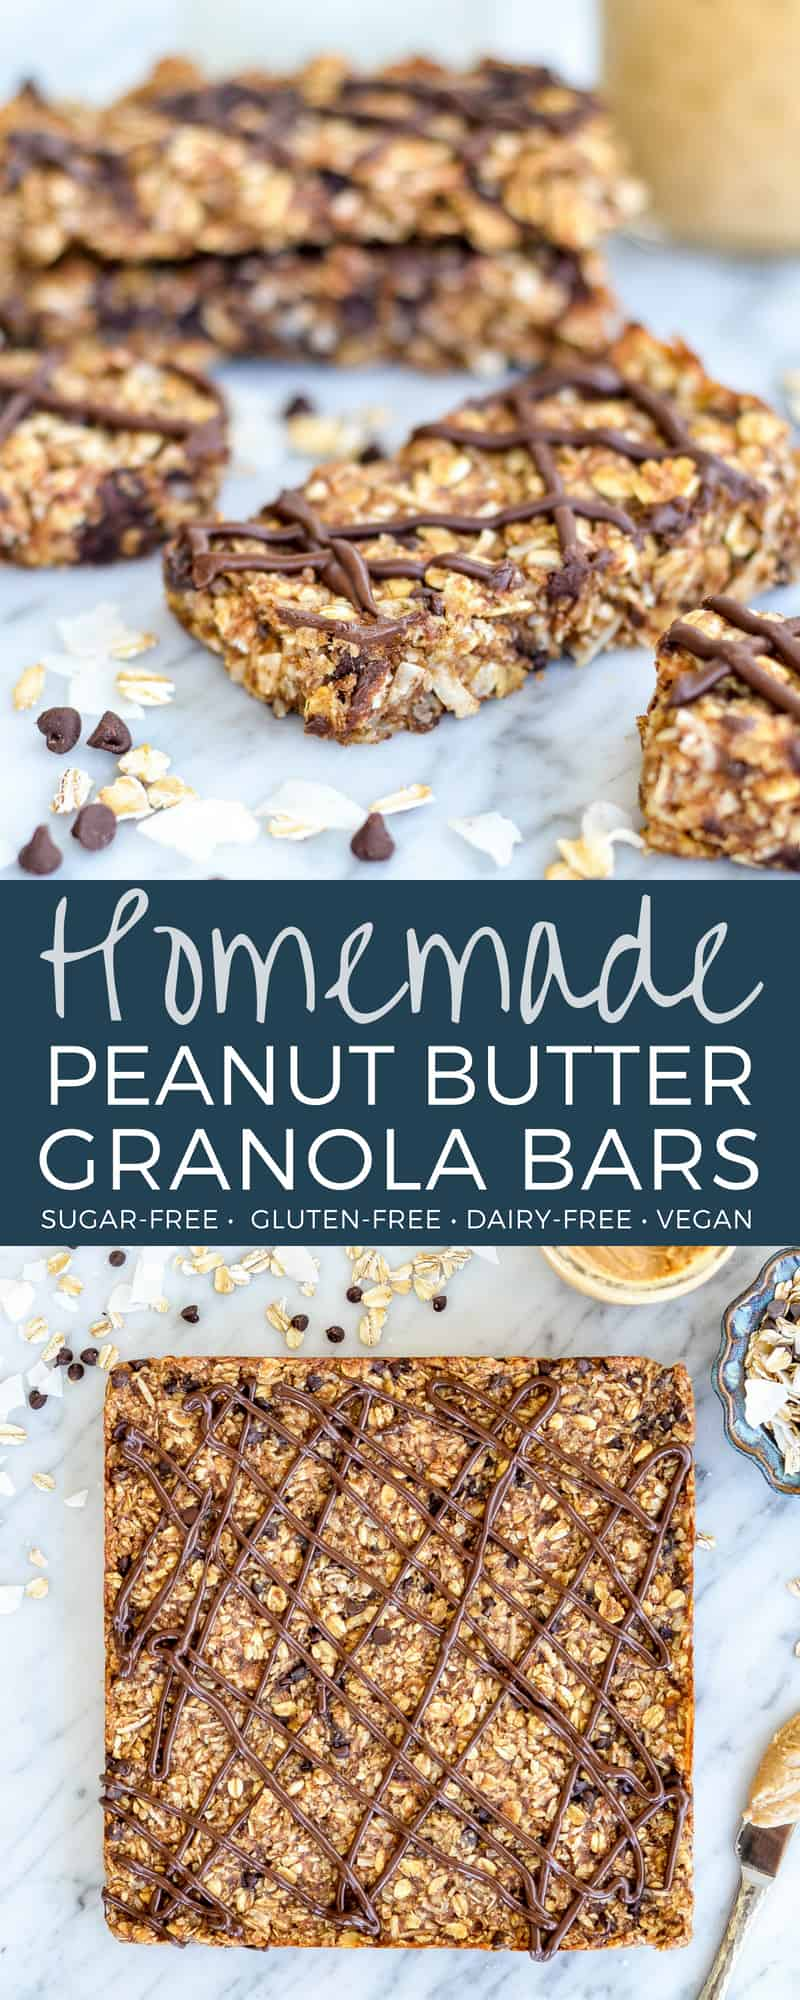 This Homemade Peanut Butter Granola Bars Recipe is a healthy homemade snack for busy moms! They are oil-free and sugar-free because they are sweetened with dates! Plus they are gluten-free, dairy-free, vegan and full of protein and fiber! #homemade #granolabar #recipe #peanutbutter #healthy